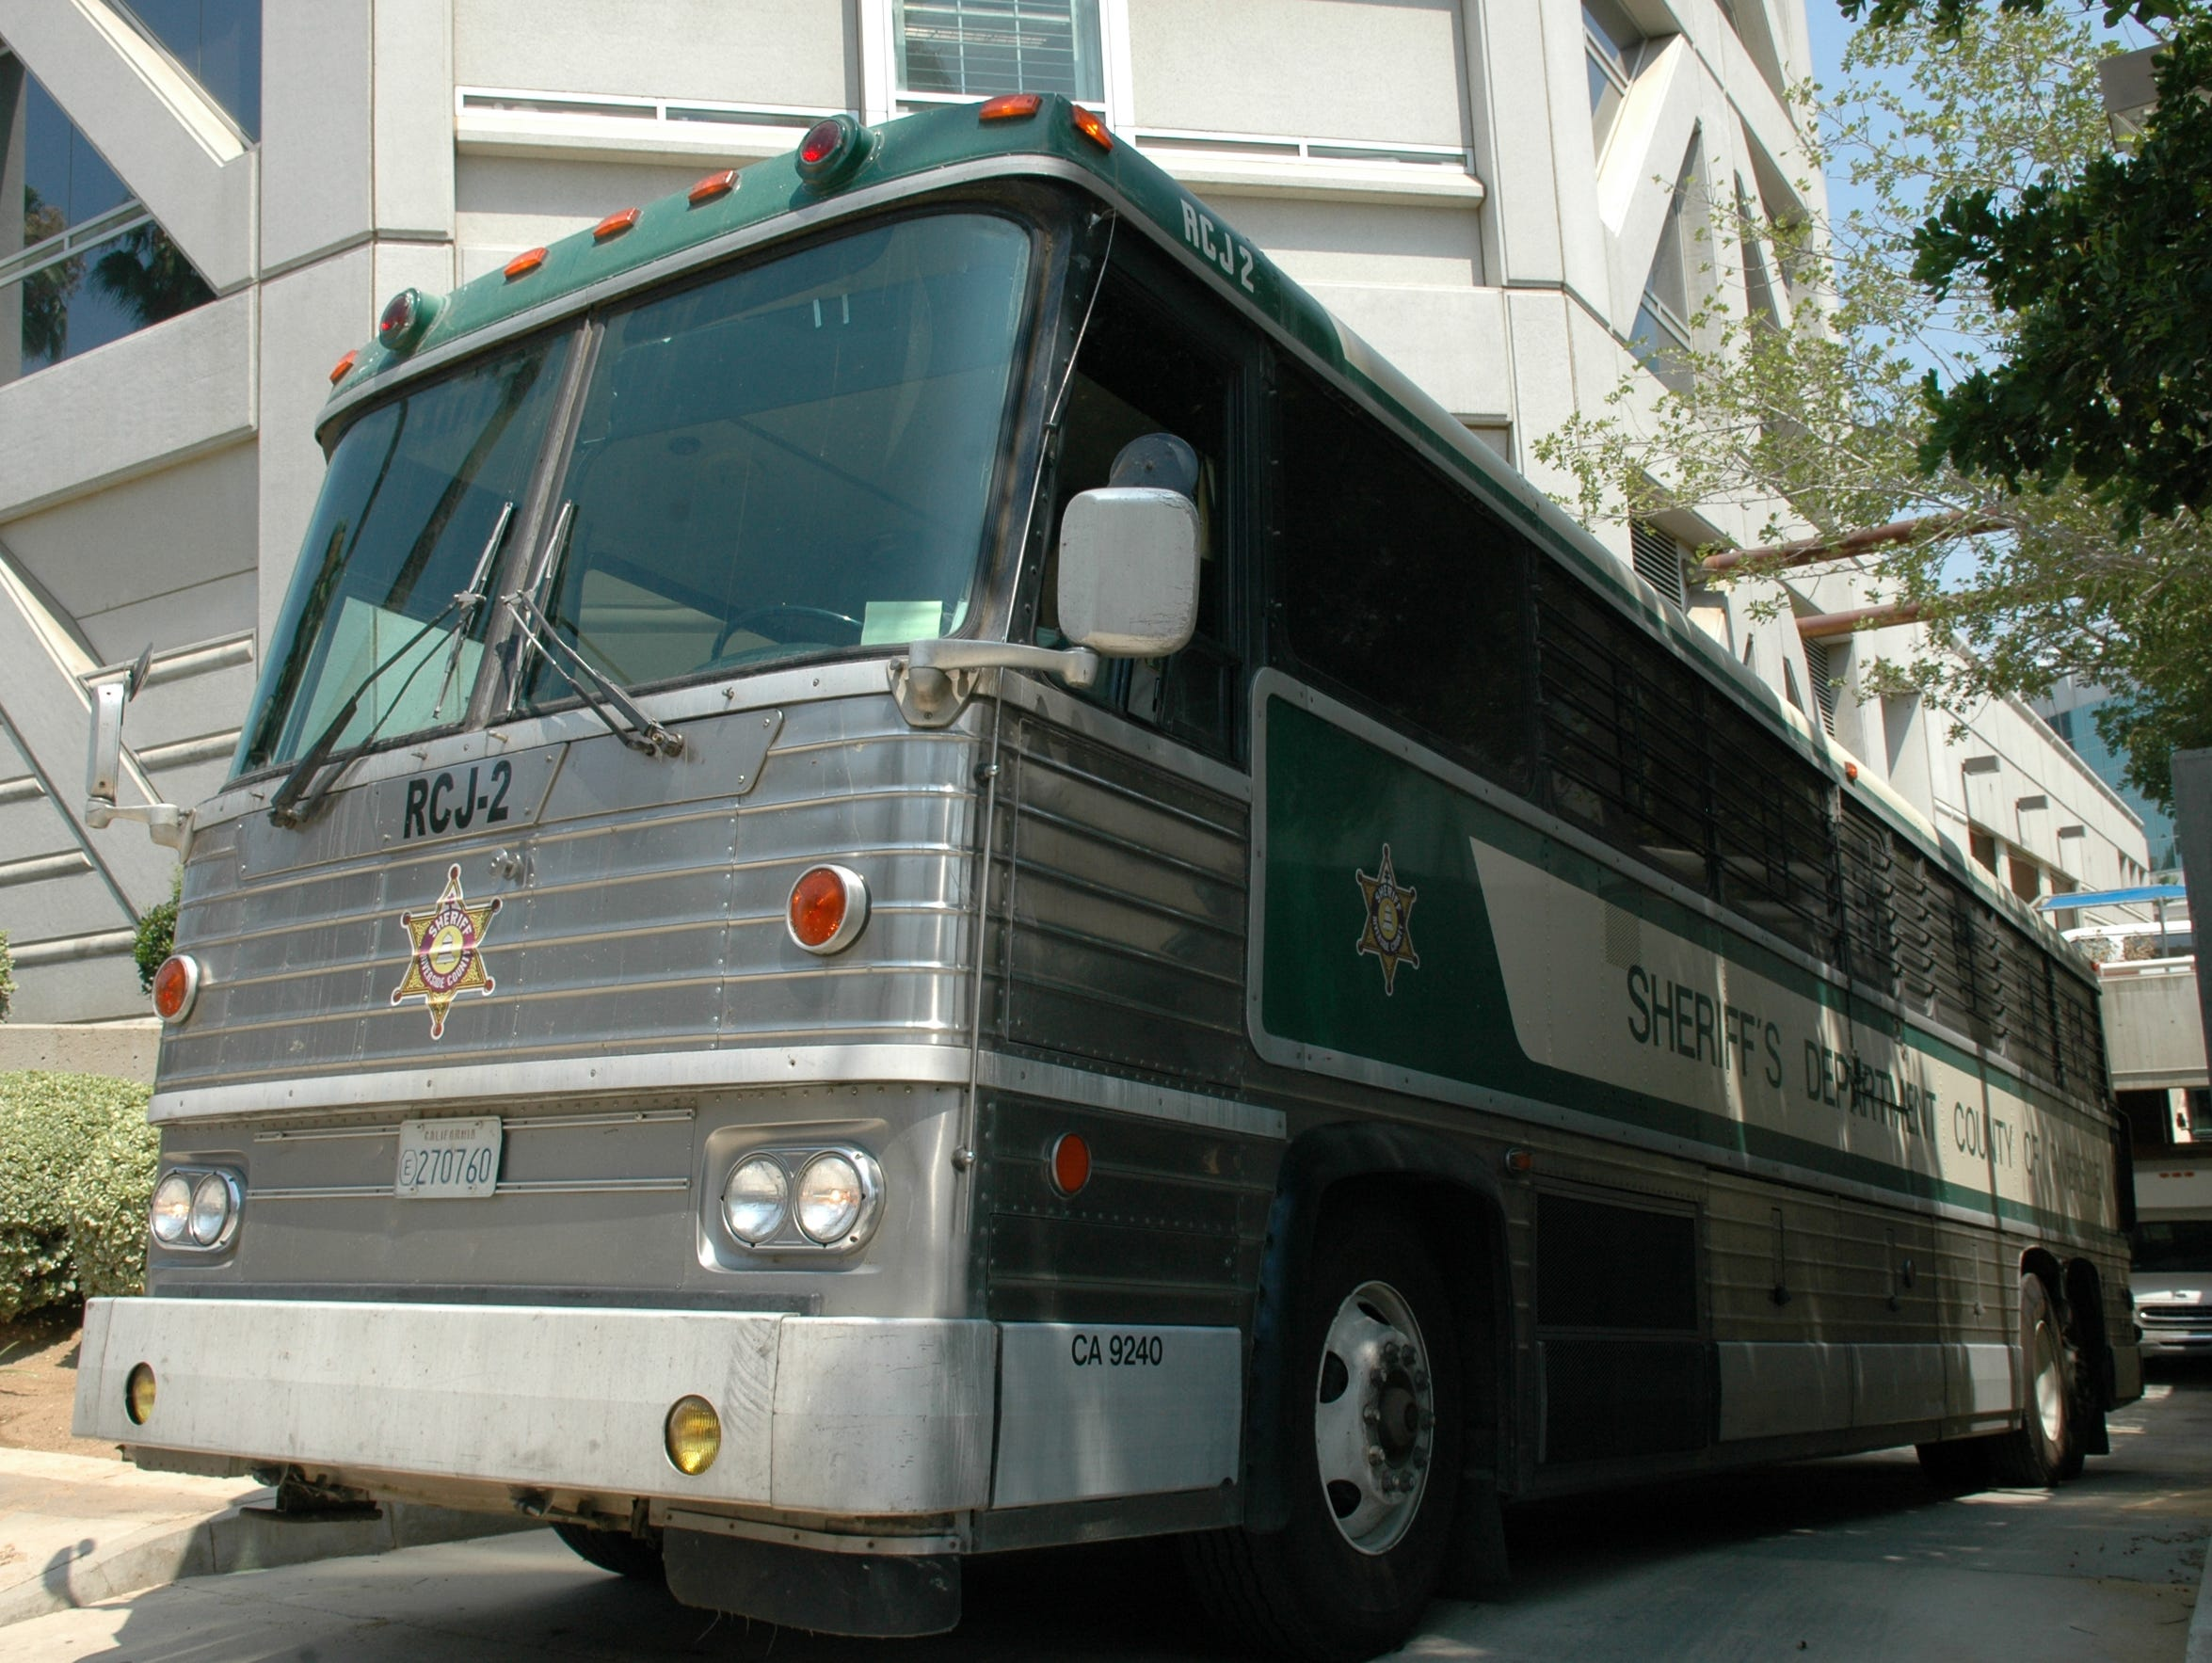 A Riverside County jail bus, just like the one that